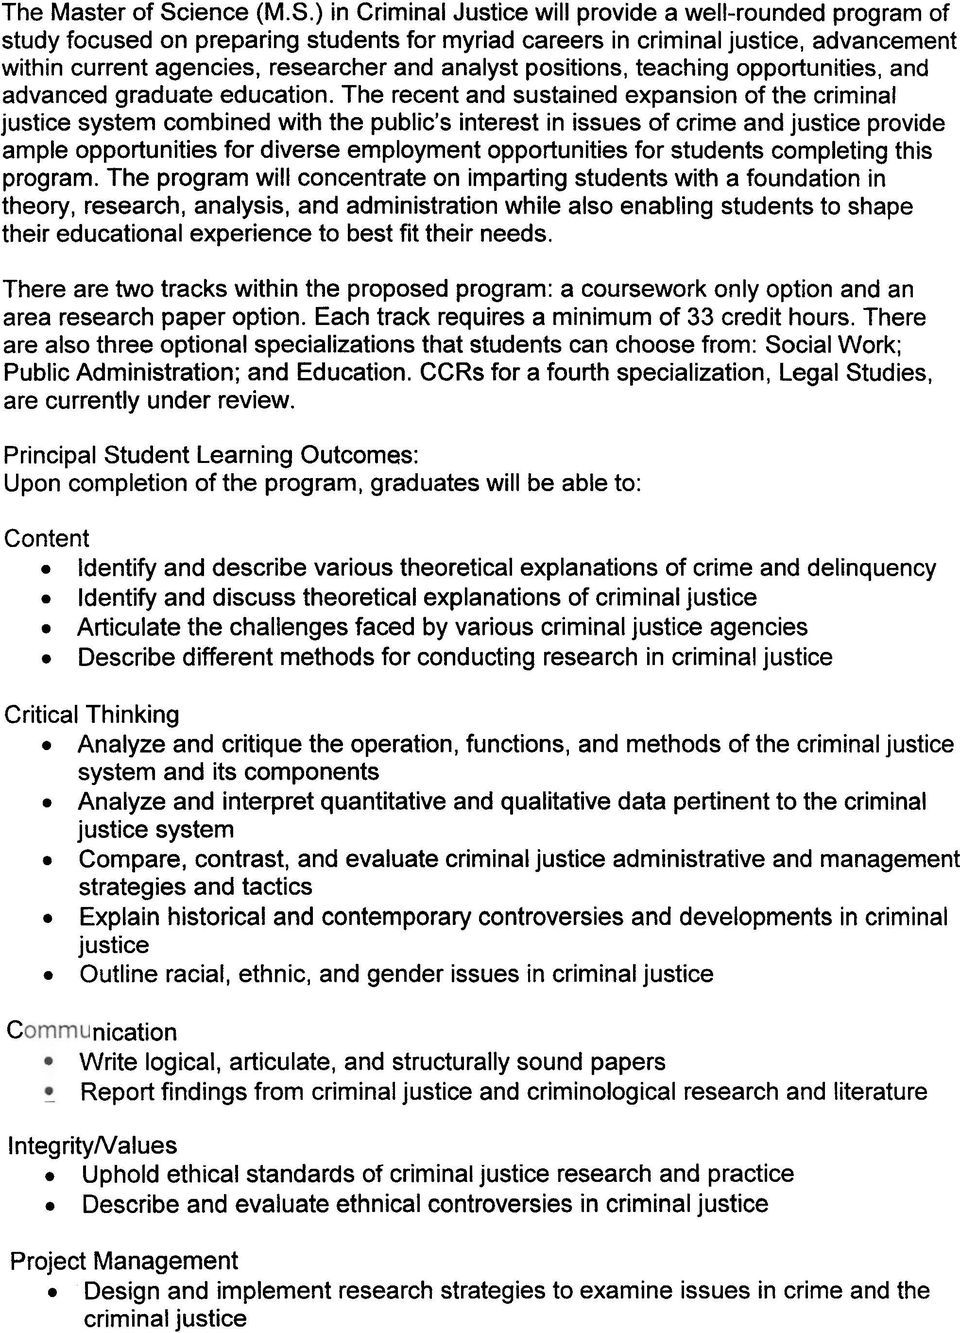 ) in Criminal Justice will provide a well-rounded program of study focused on preparing students for myriad careers in criminal justice, advancement within current agencies, researcher analyst